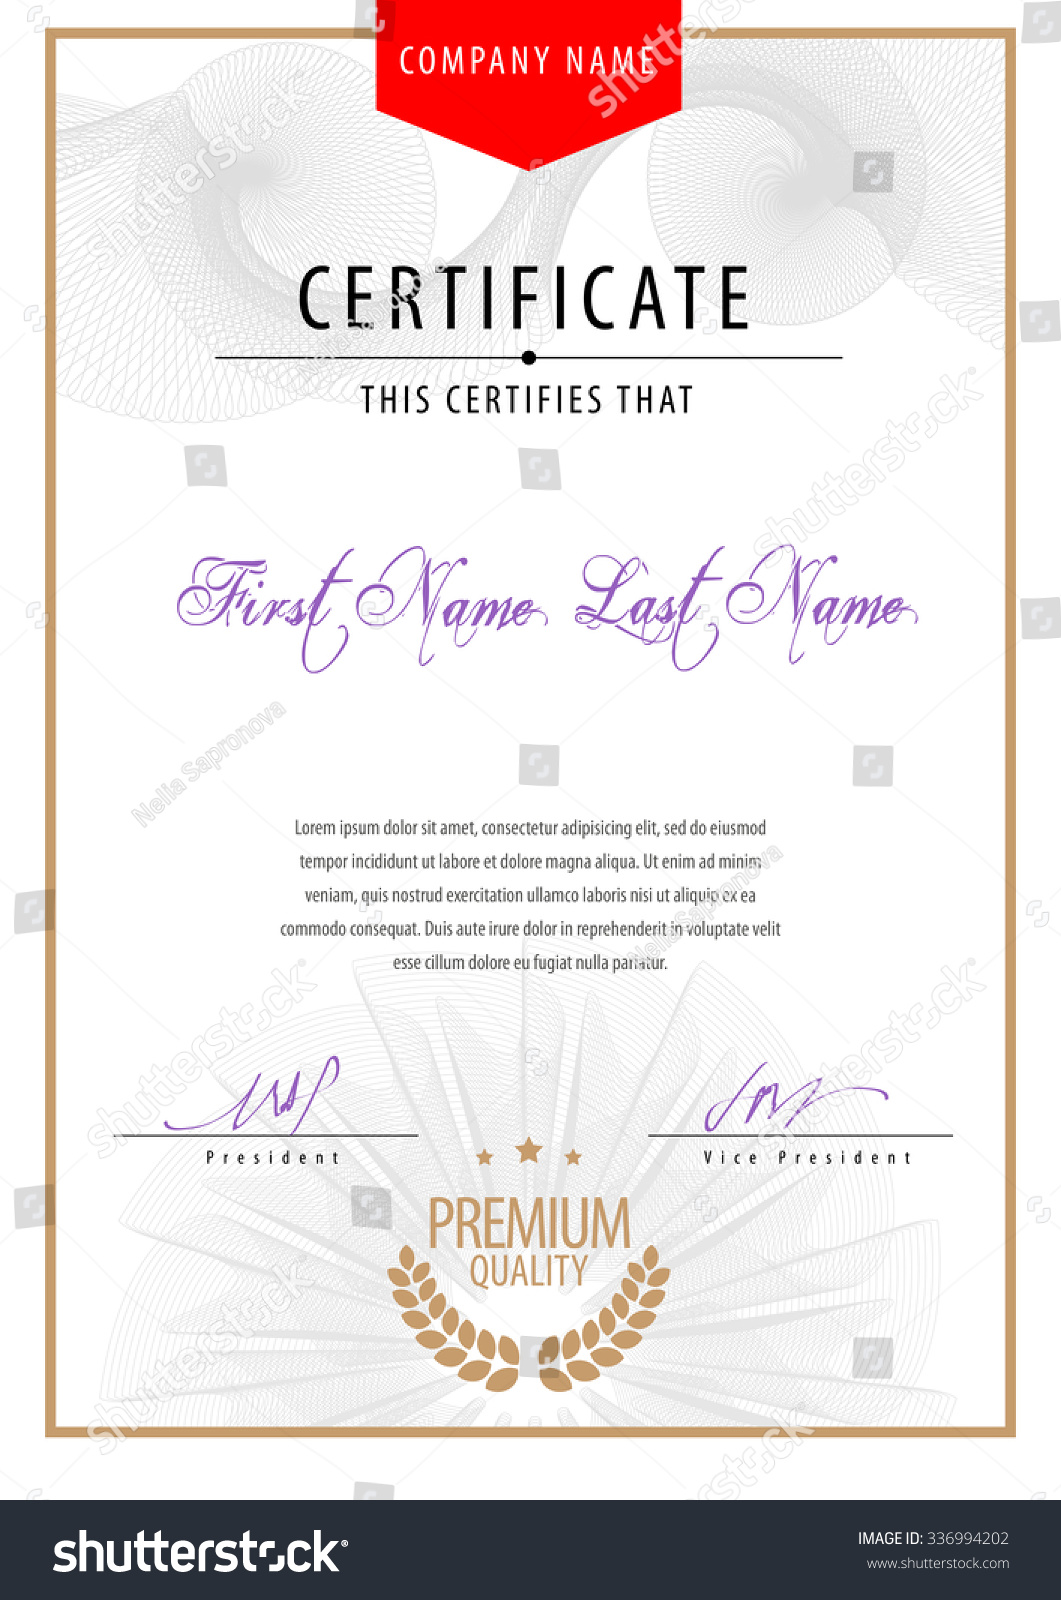 Modern certificate template diplomas currency mockup stock vector modern certificate template diplomas currency mockup for your design vector illustration alramifo Image collections